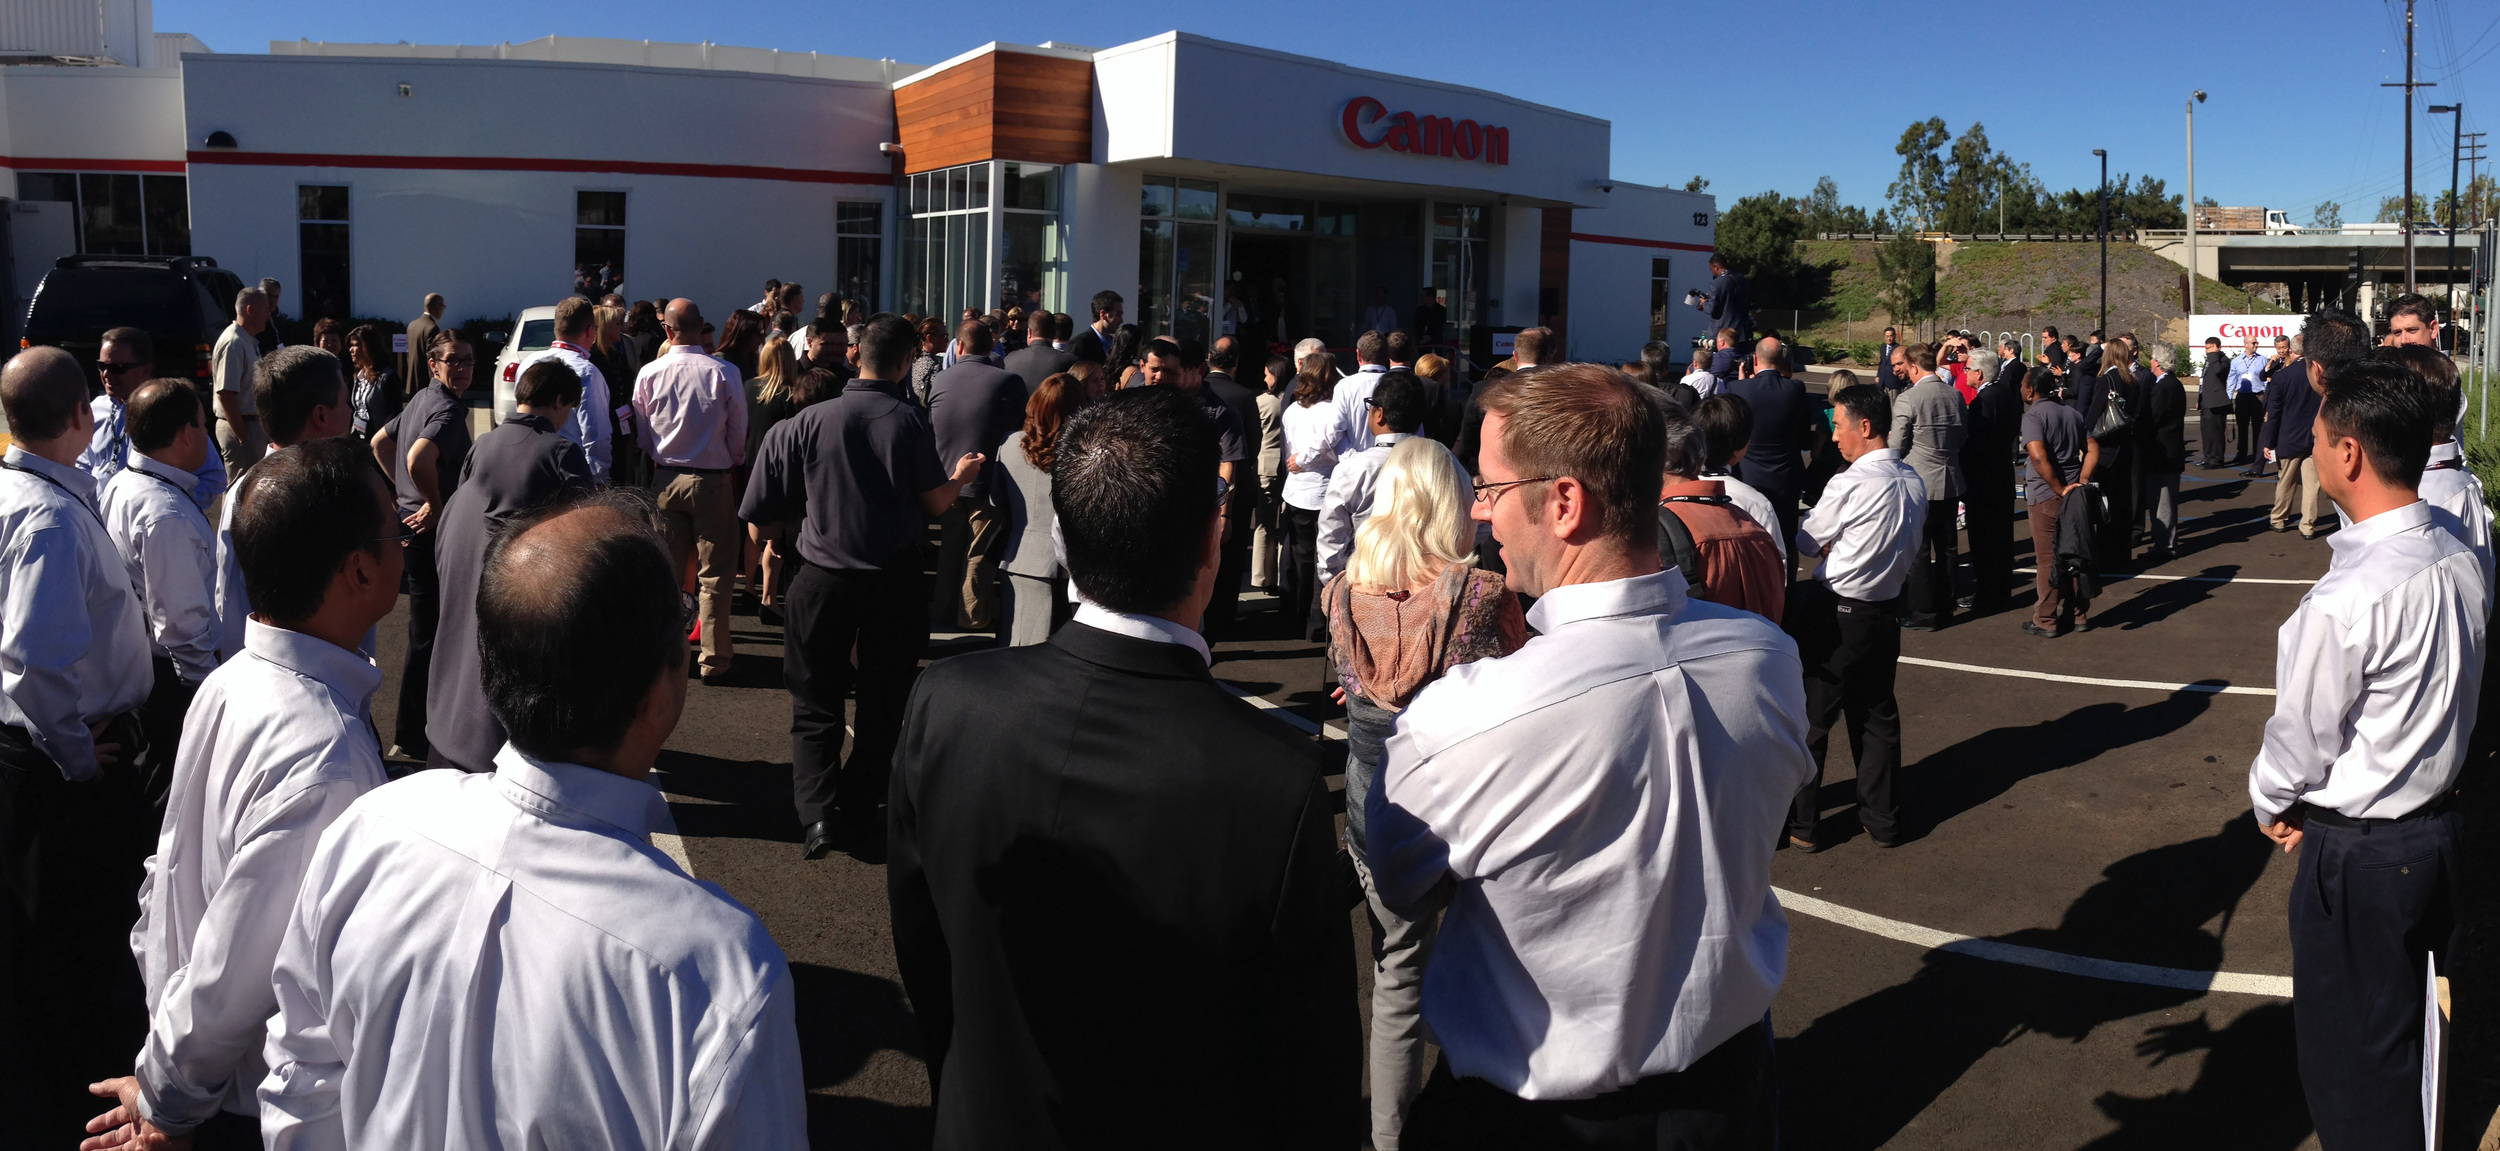 Crowd gathers for the Grand opening of the Canon Experience center in Coast Mesa, Ca.